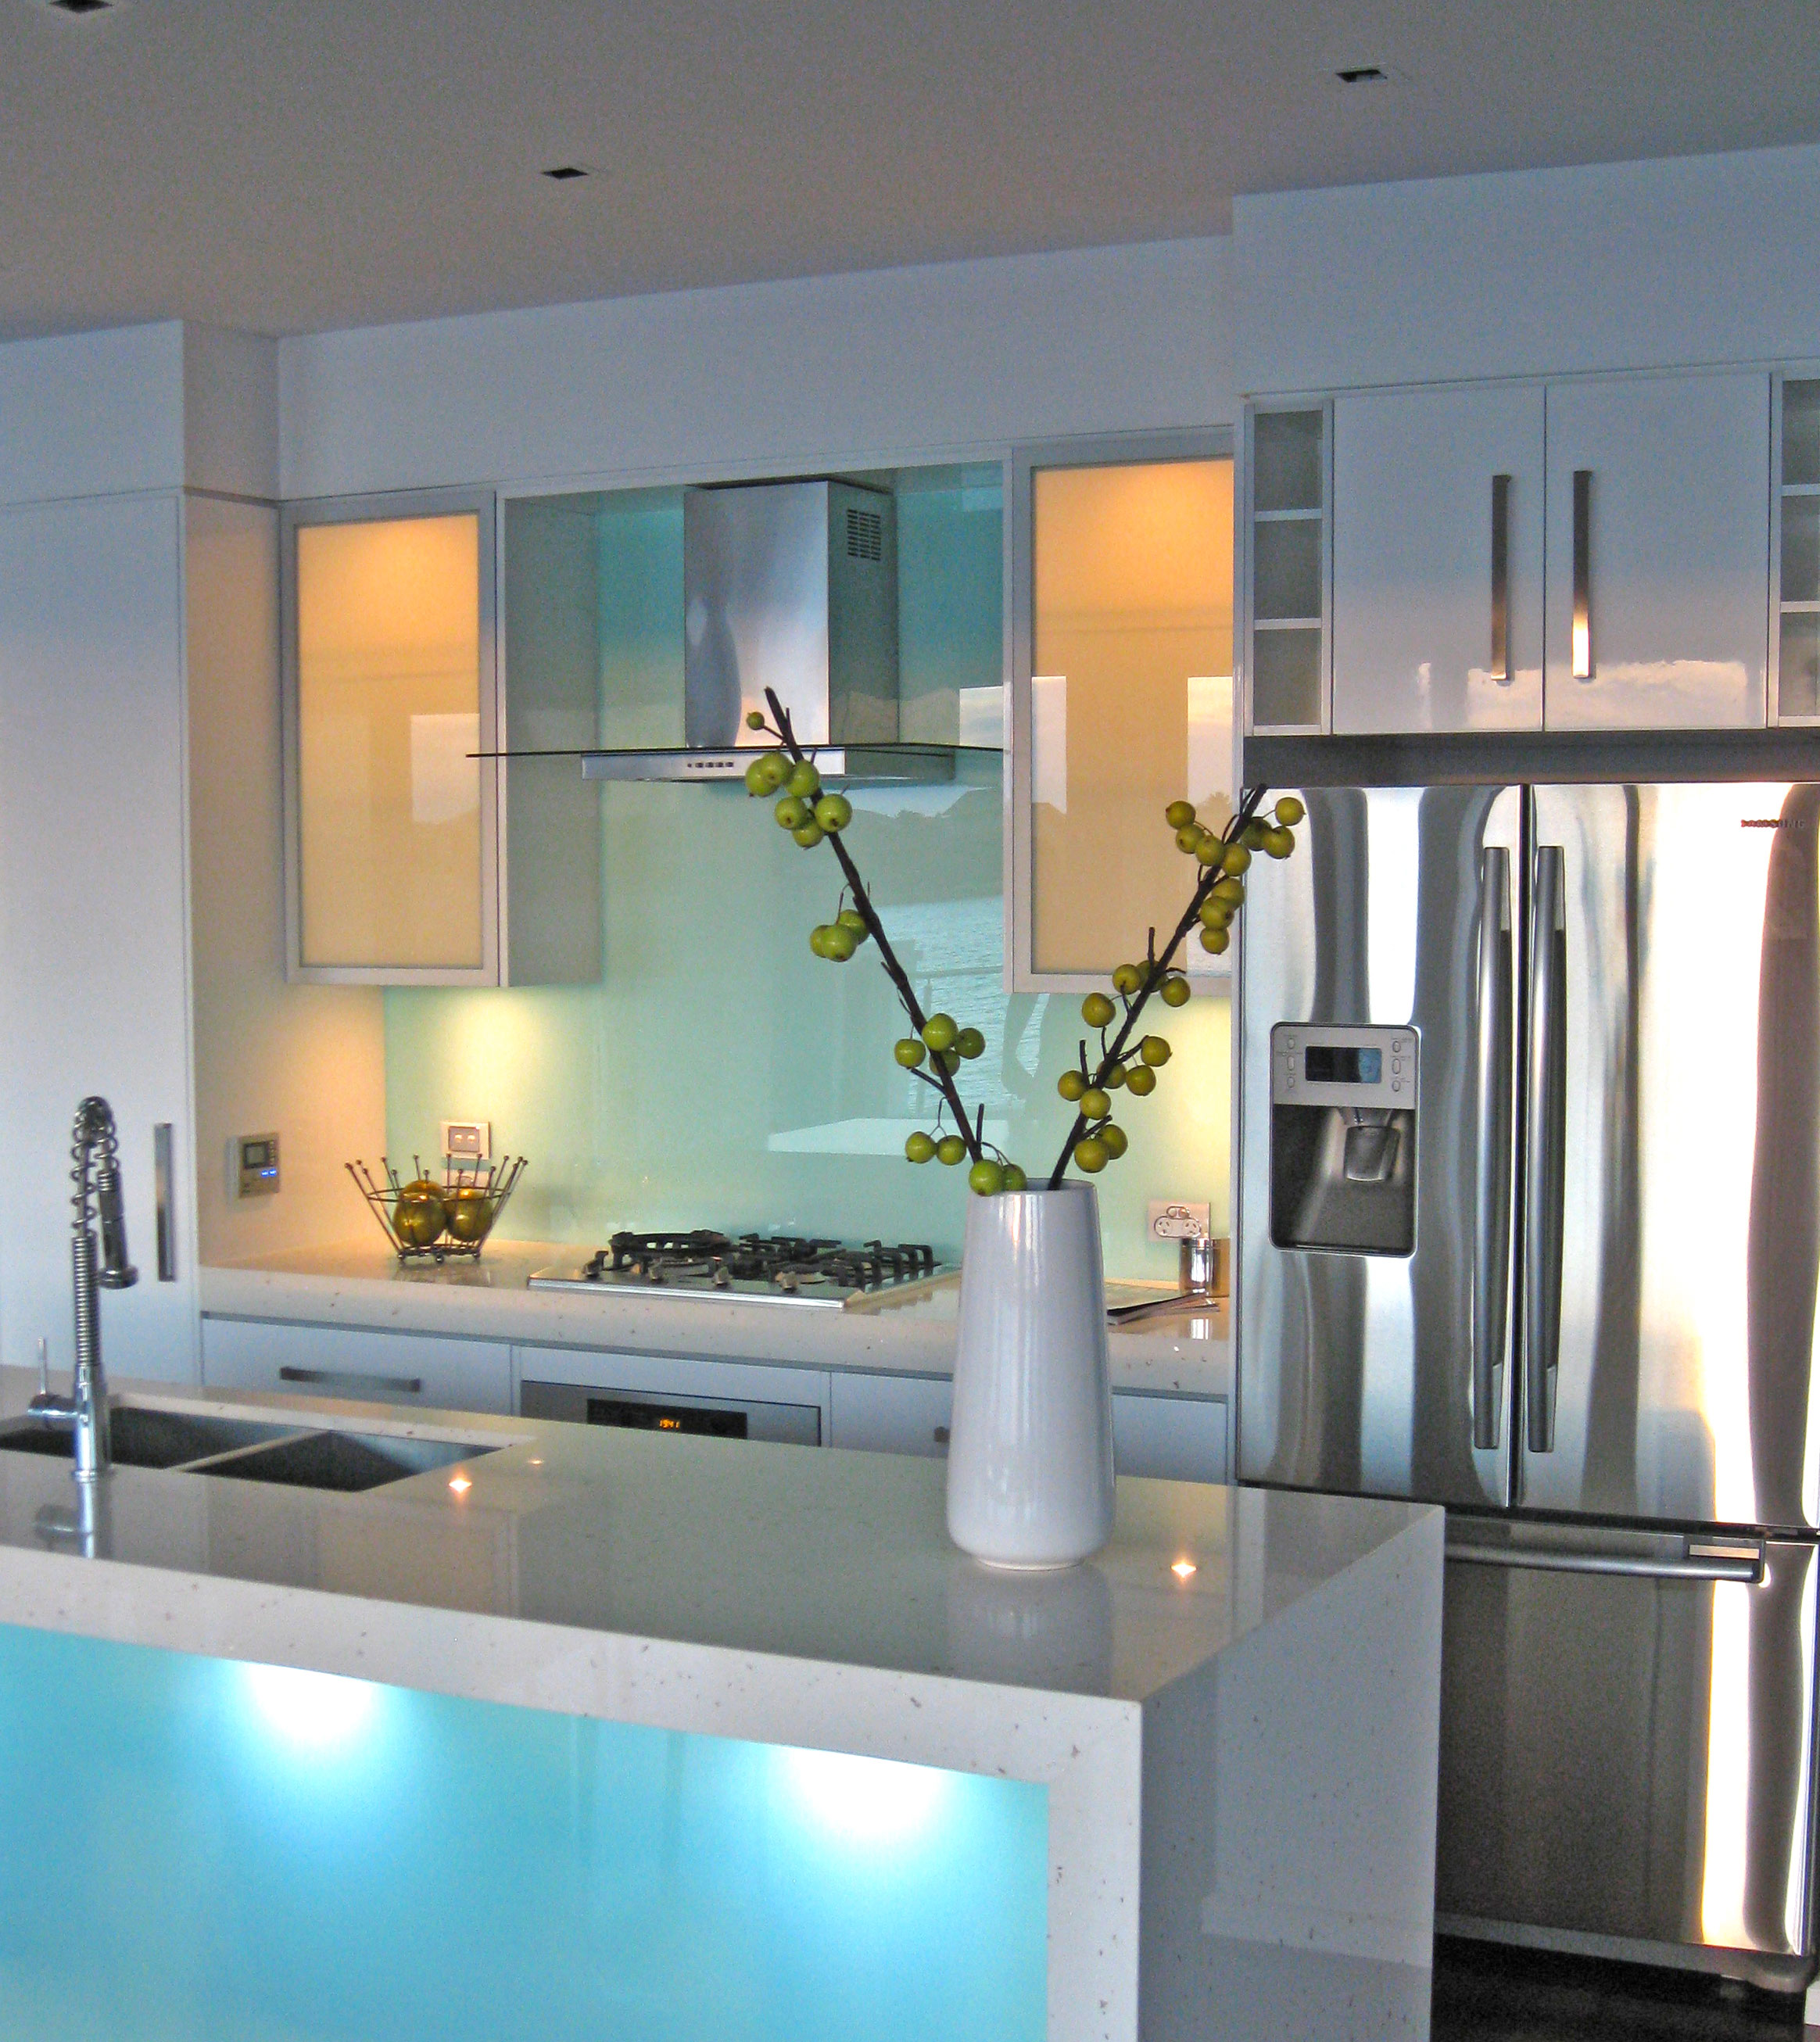 stunning custom kitchen and bathroom designs - Bathroom Designs Adelaide